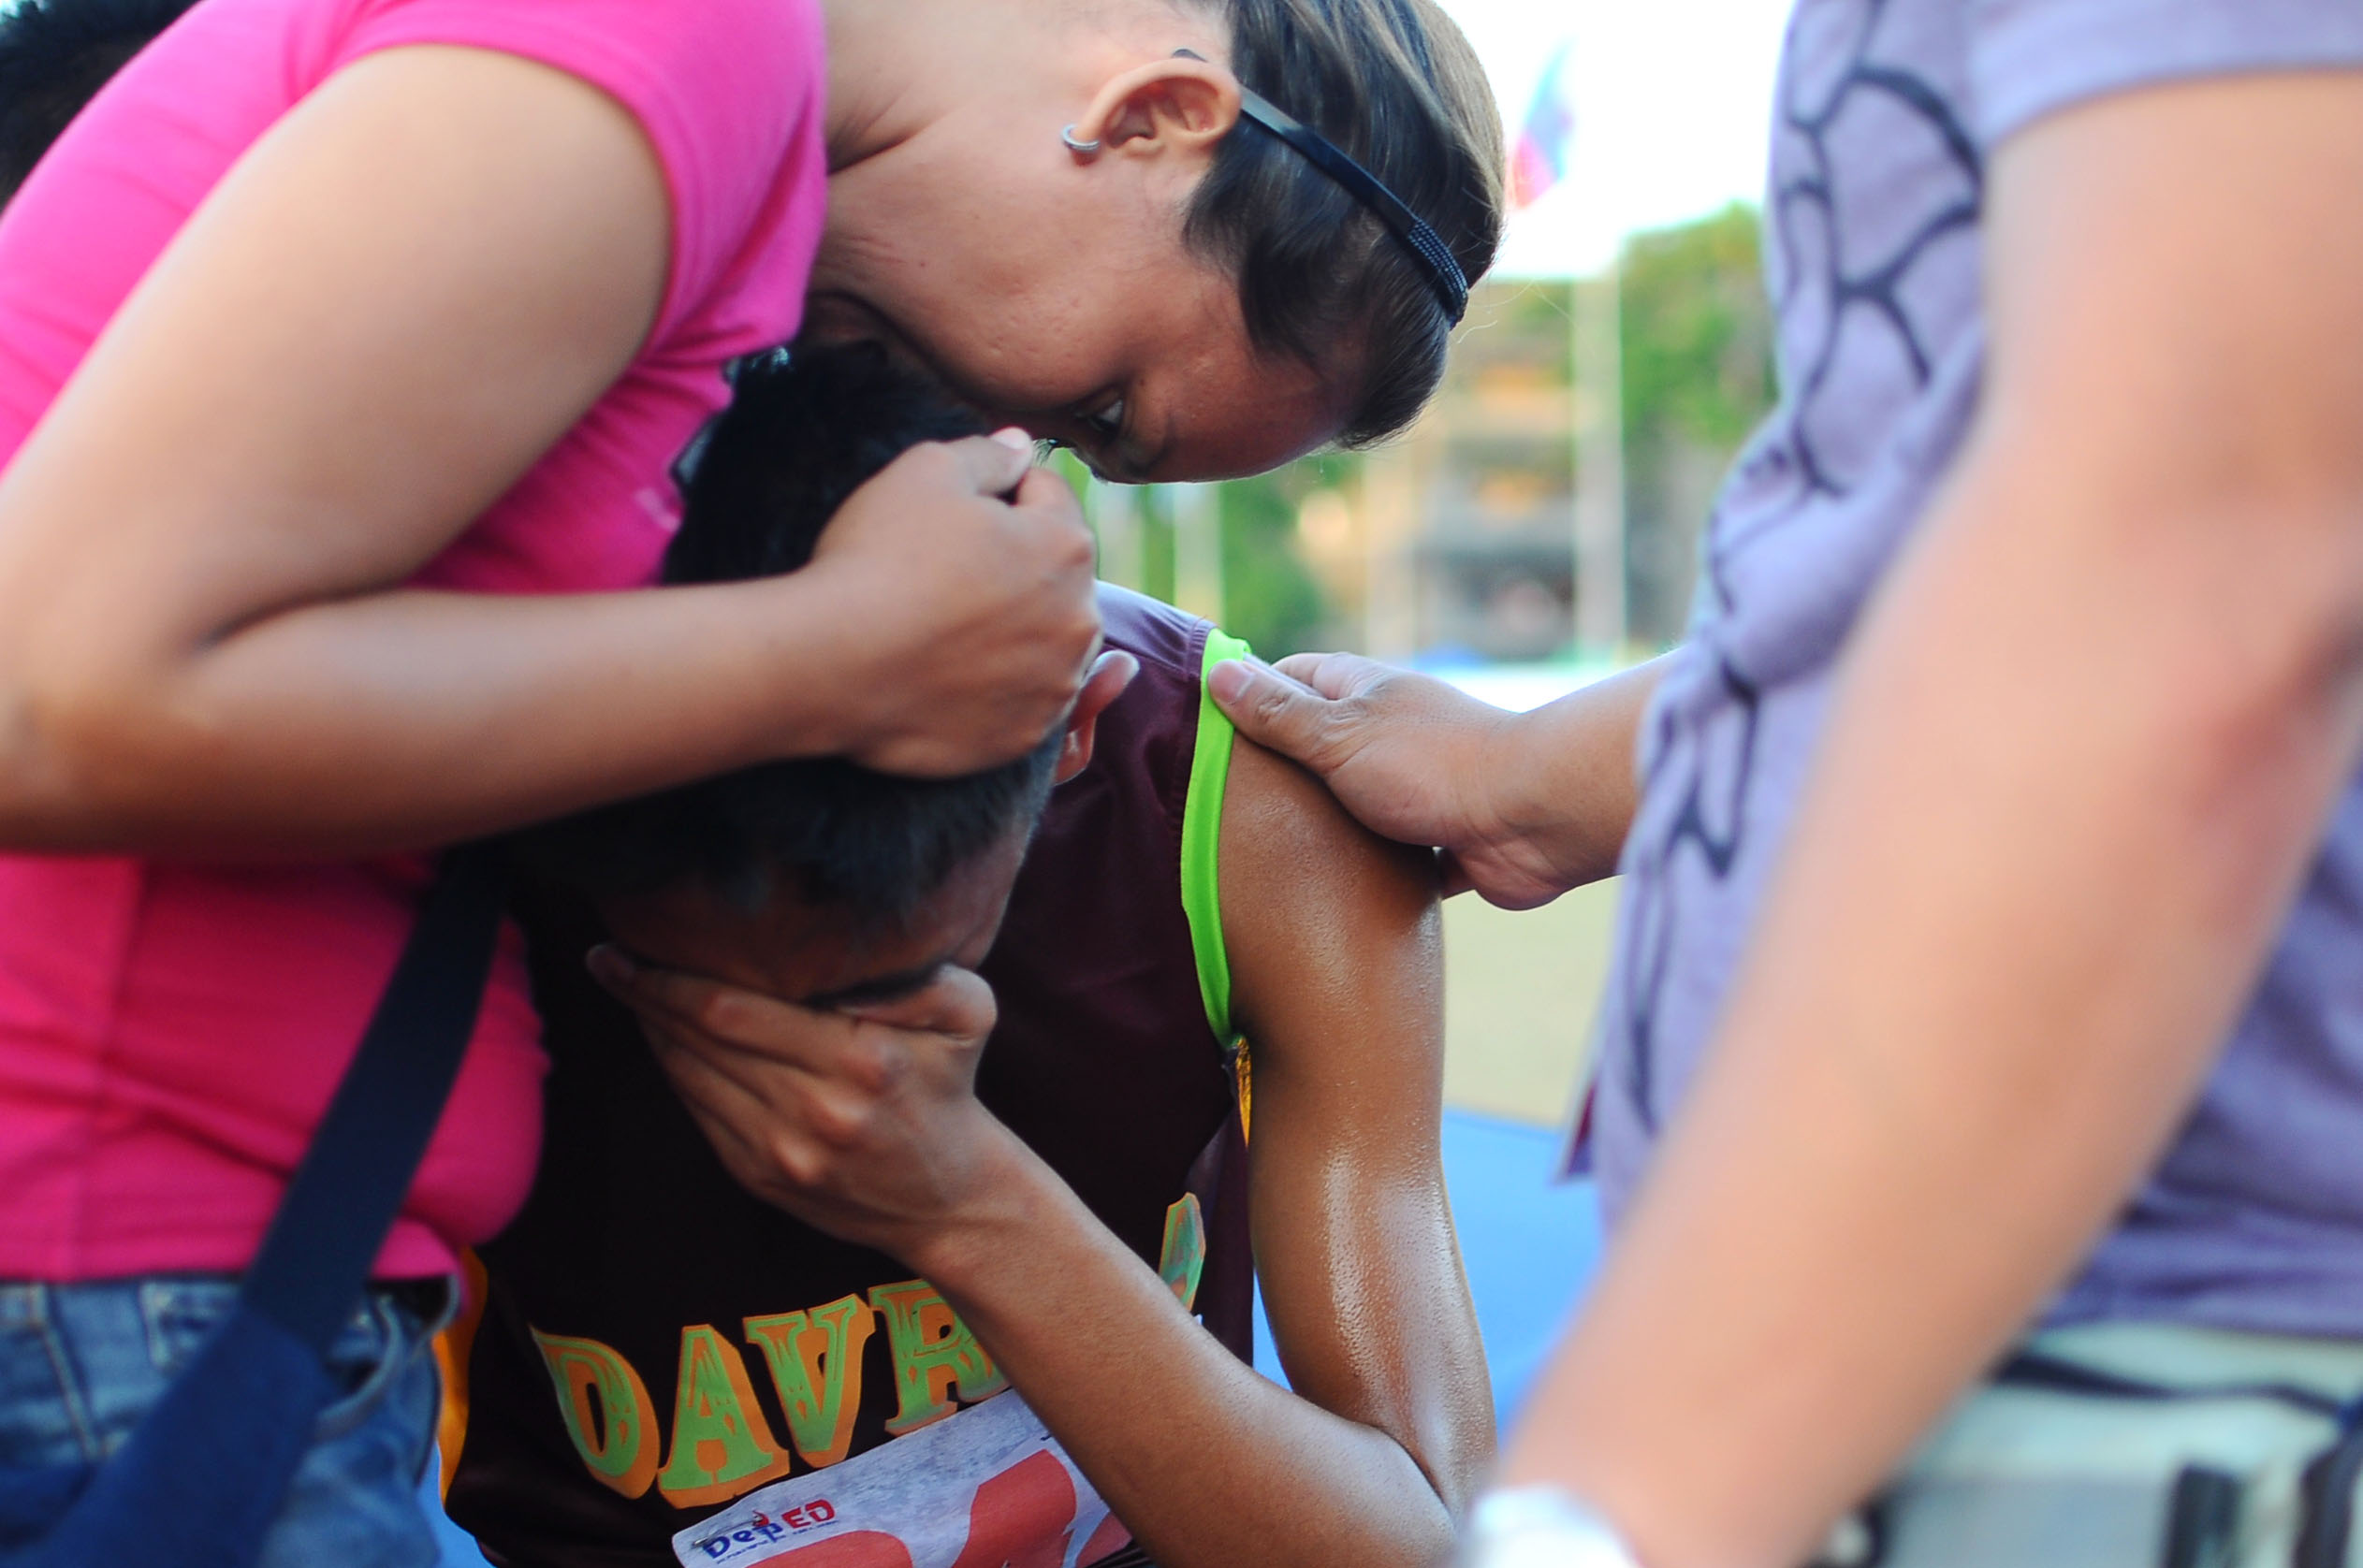 IN TEARS. 3,000-meter steeplechase silver medalist Germar Marcelo from DAVRAA cries and is comforted by her mom. Photo by Roy Secretario/Rappler